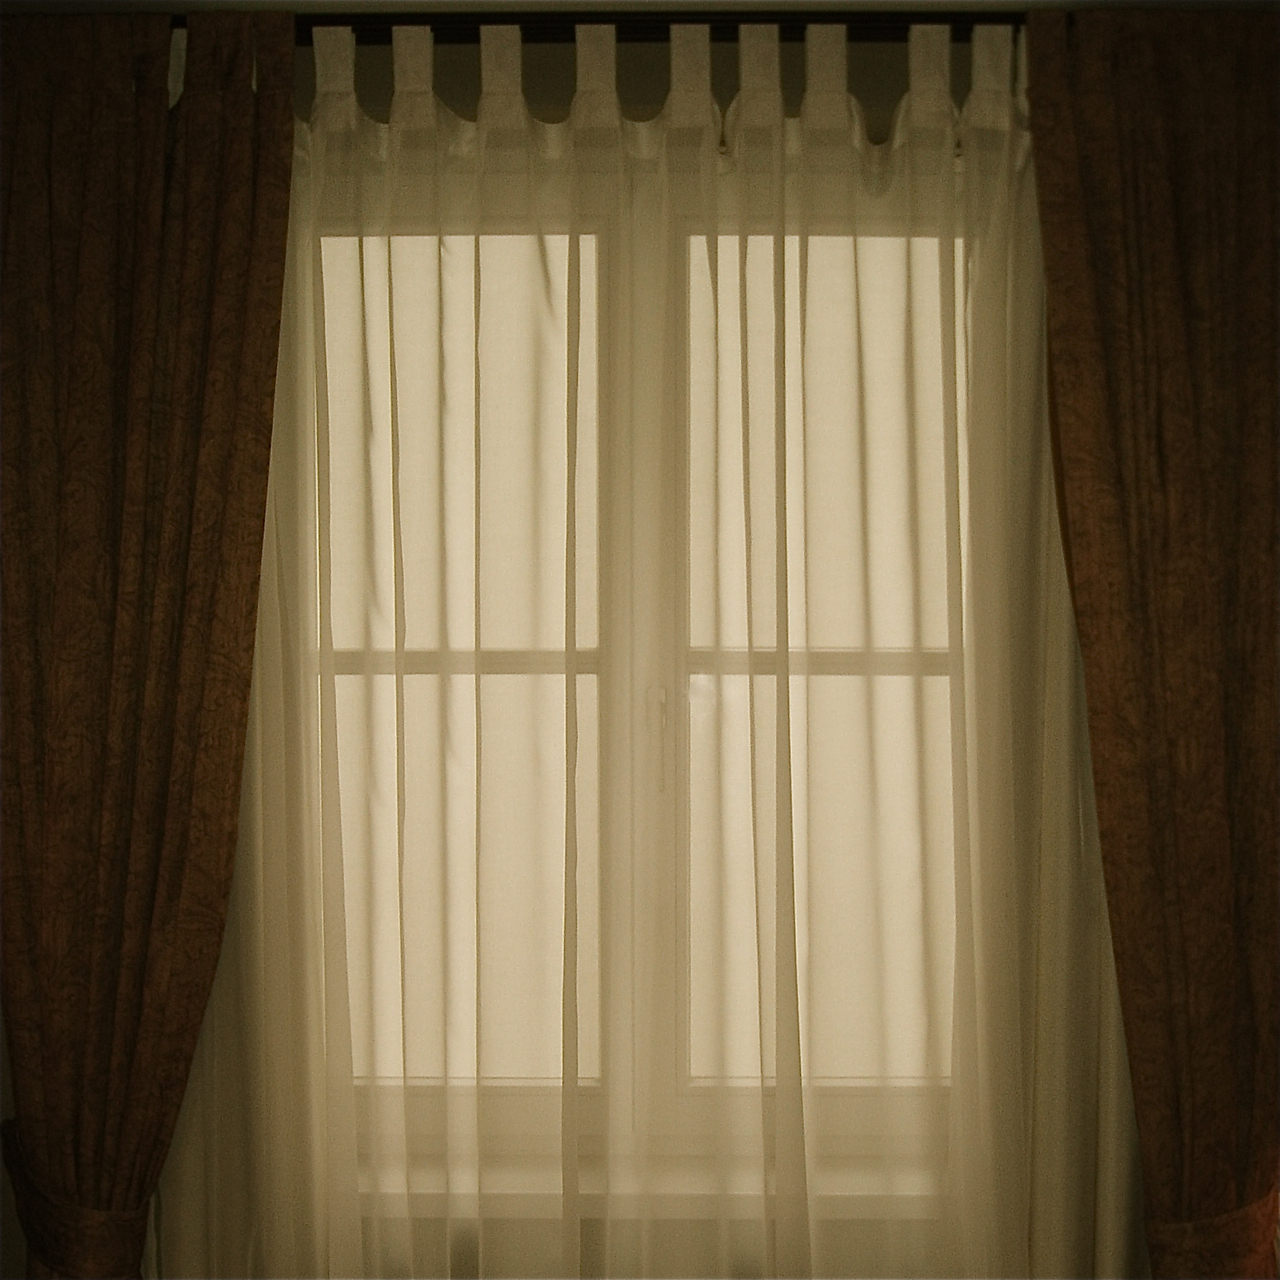 See Through Curtains see through curtains | interior design assist